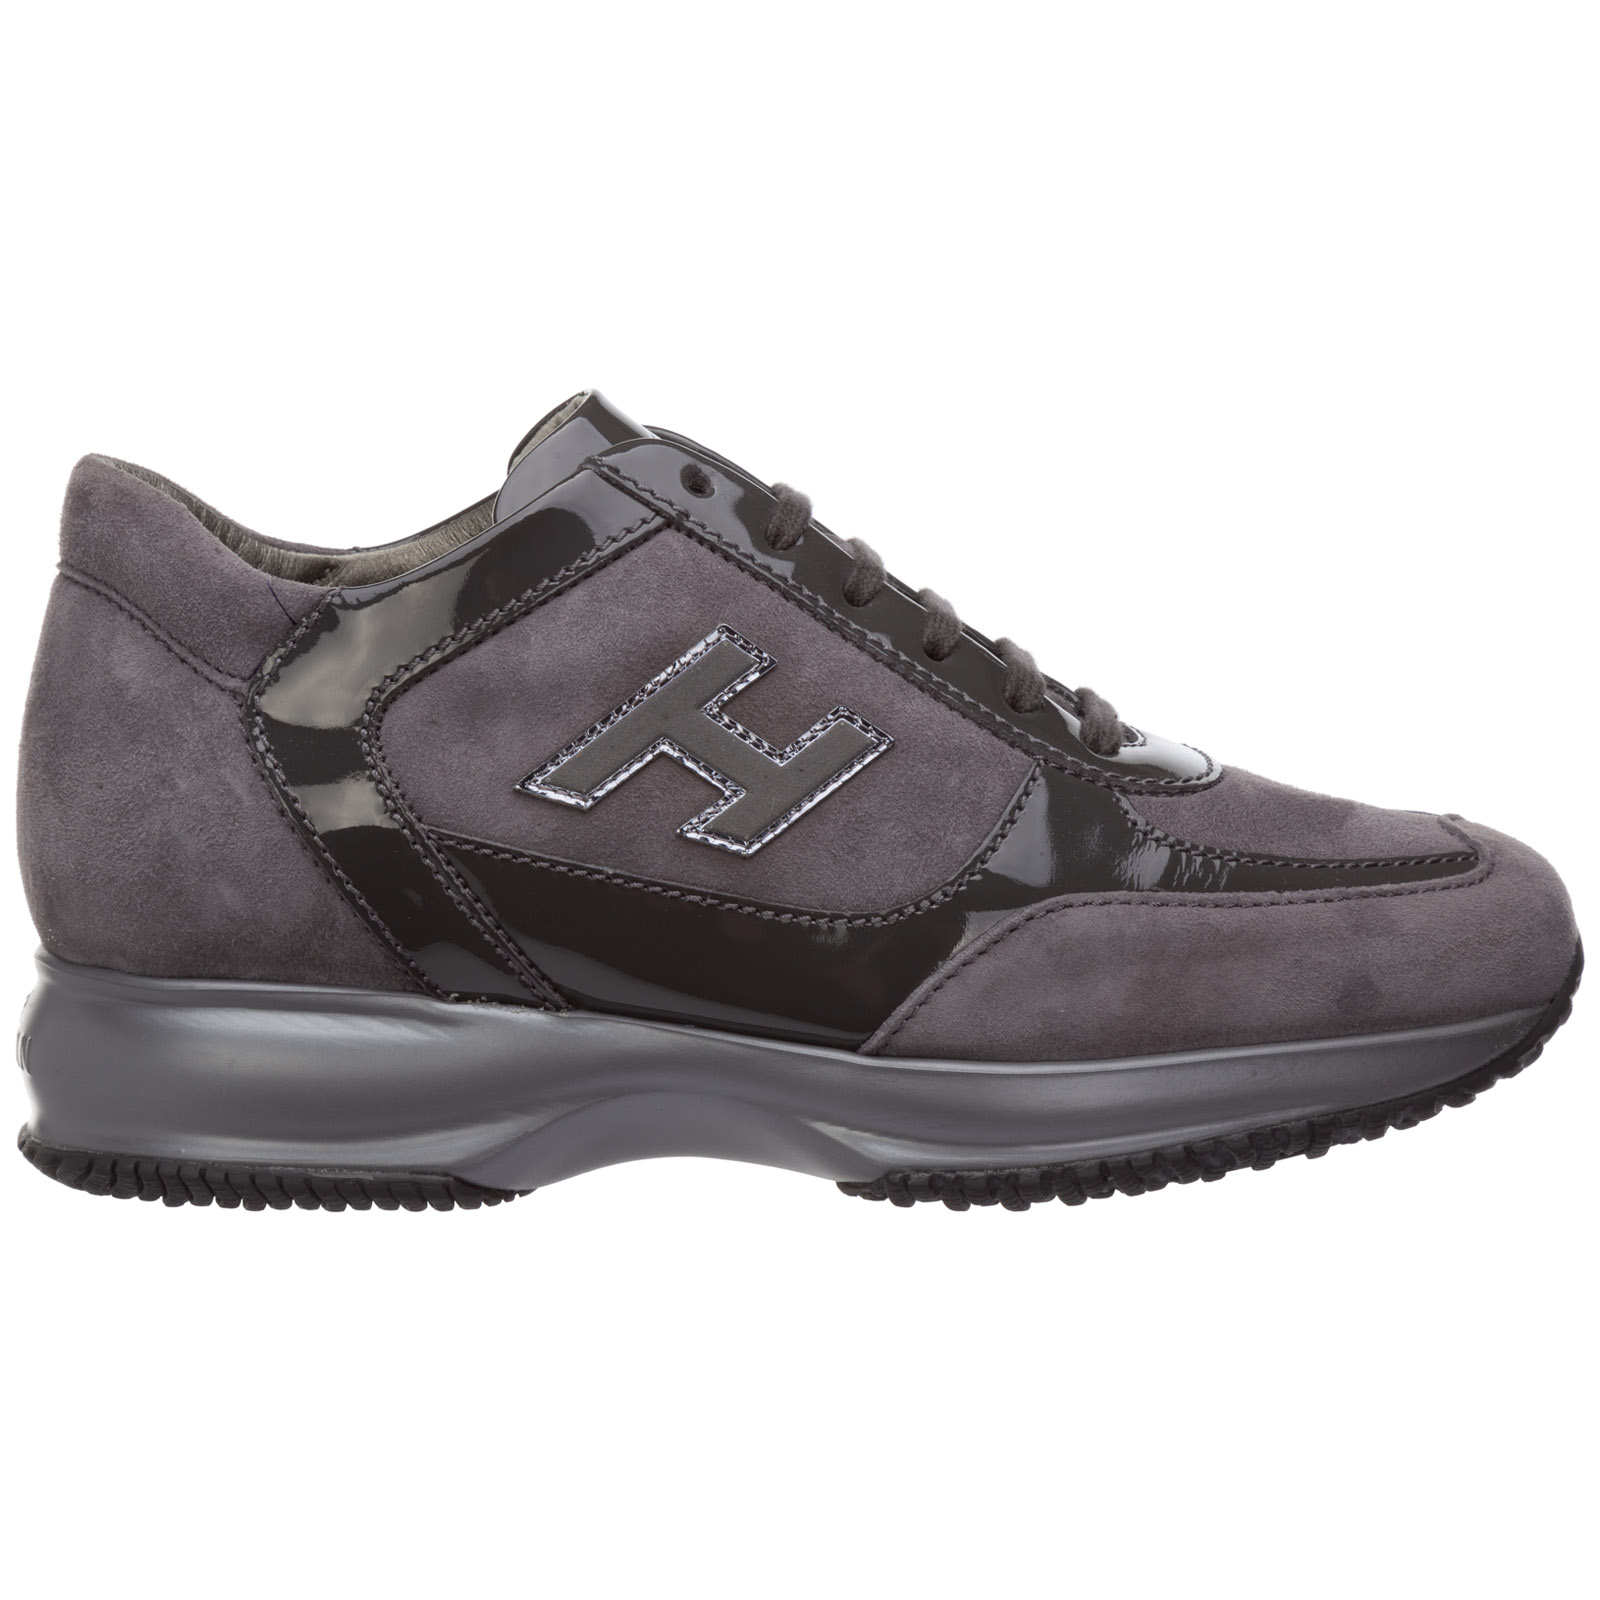 2df7a438f132 Hogan Women s shoes suede trainers sneakers interactive h flock